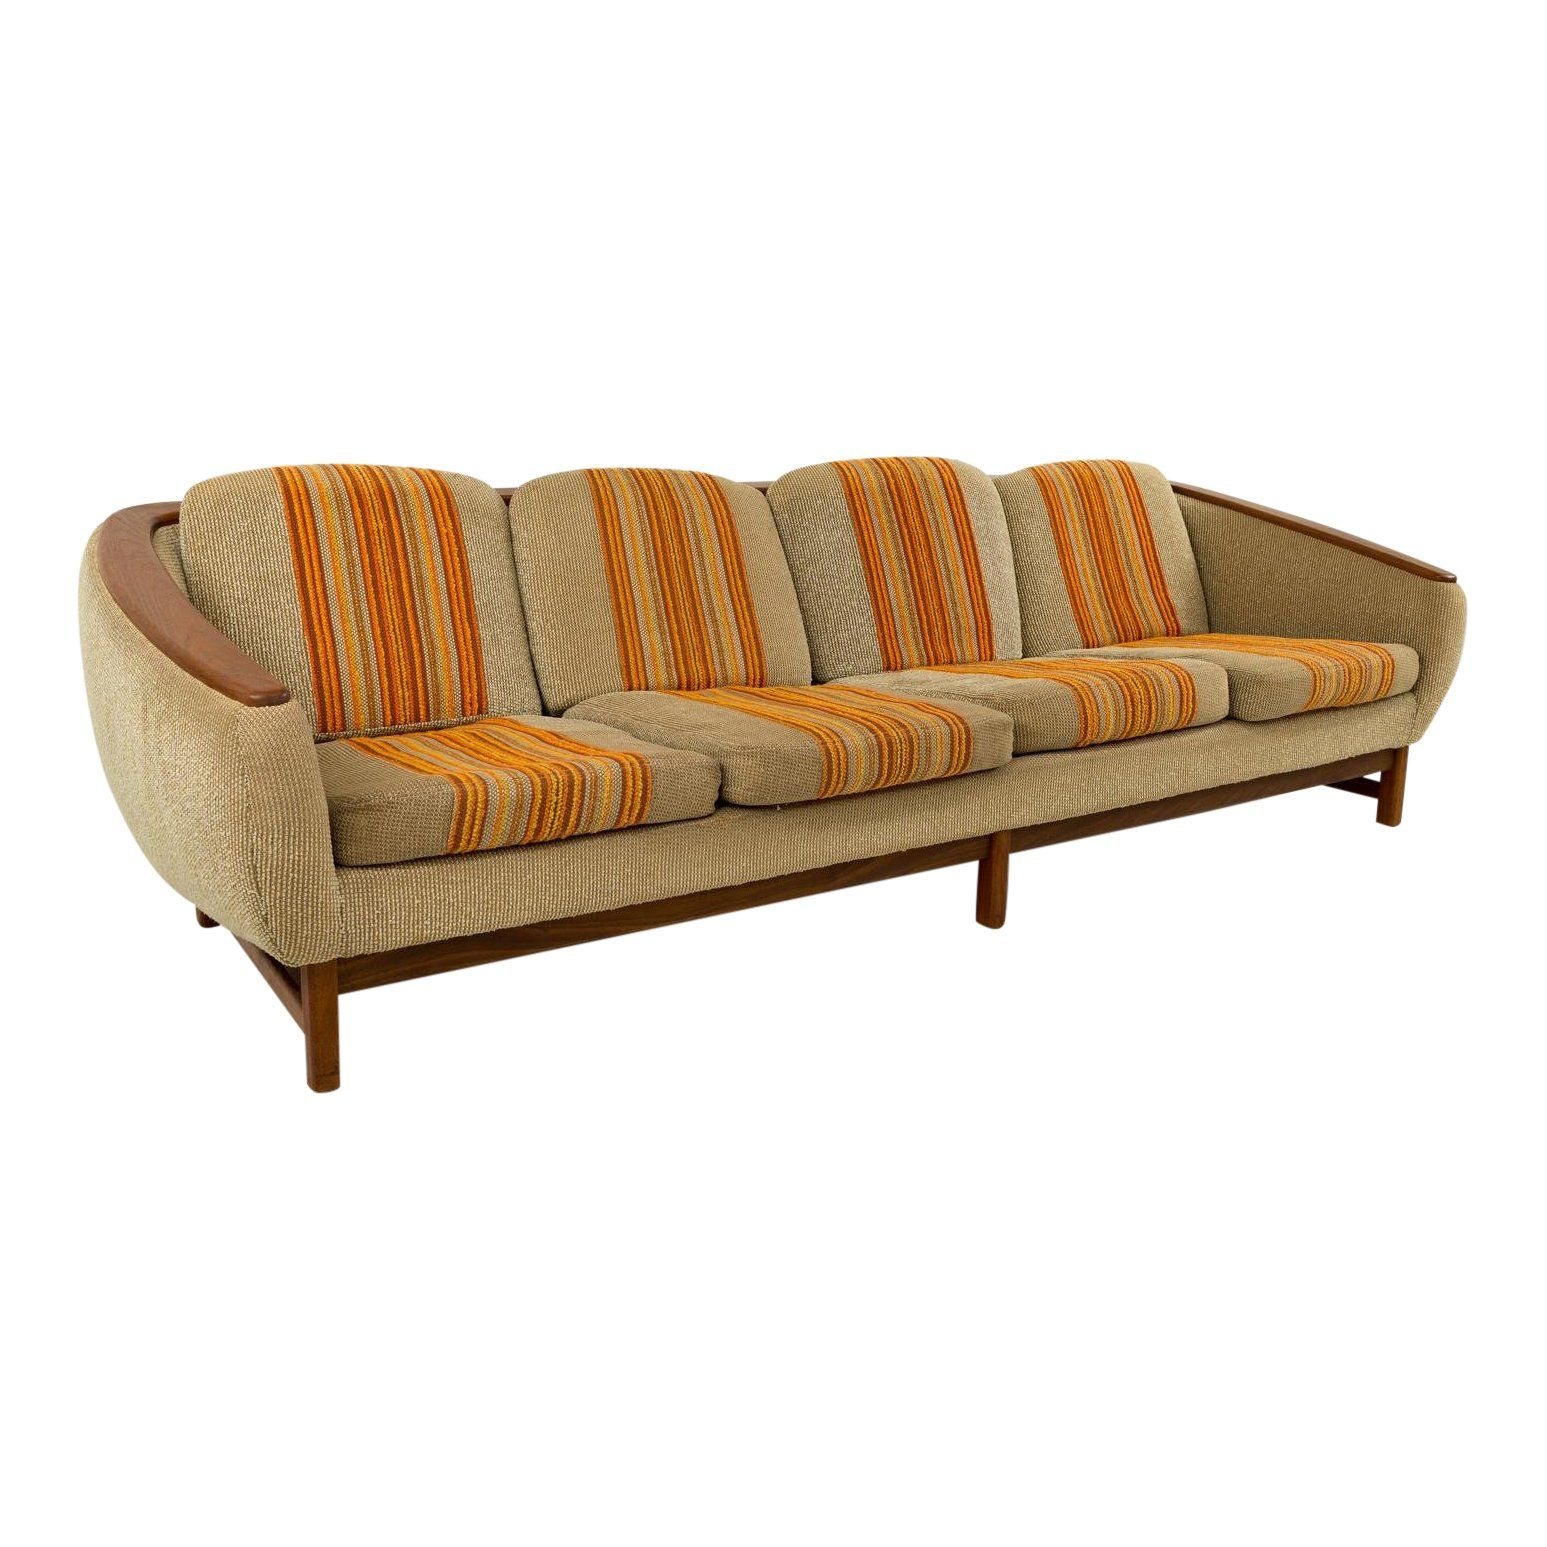 Sofa X Long Mid Century Modern R Huber Teak Arm Sofa101 Long X 36 Deep X 28